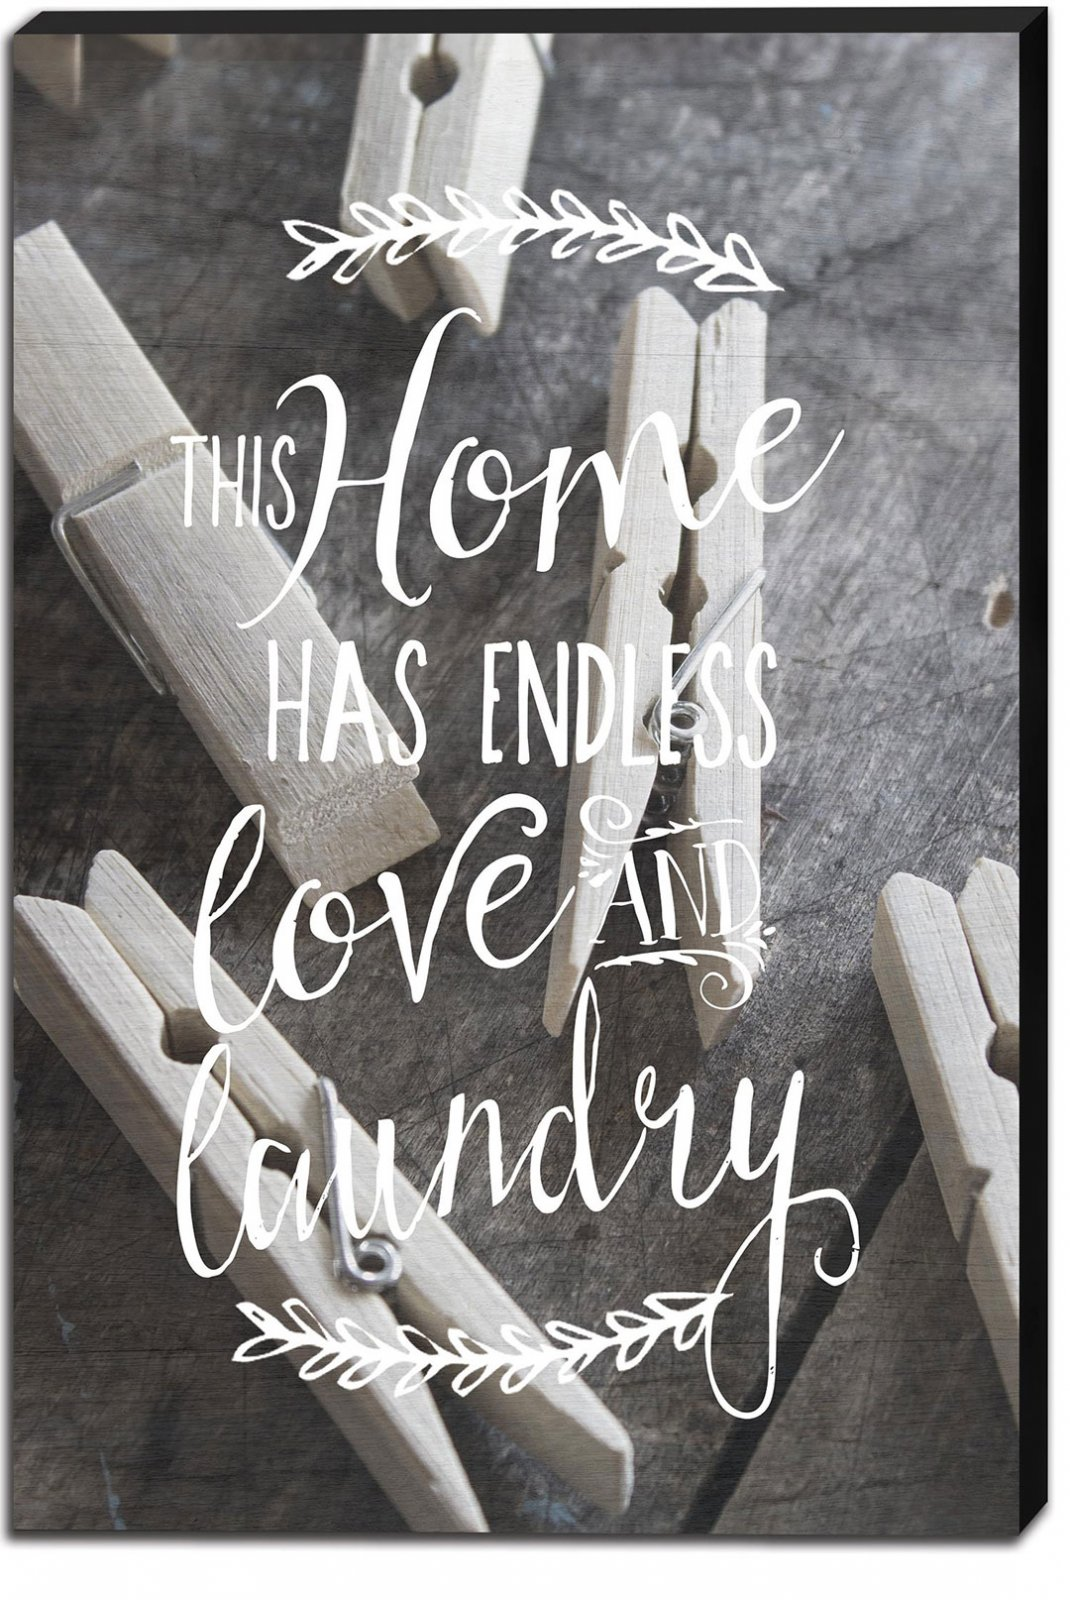 12x18 Endless Love Laundry Canvas